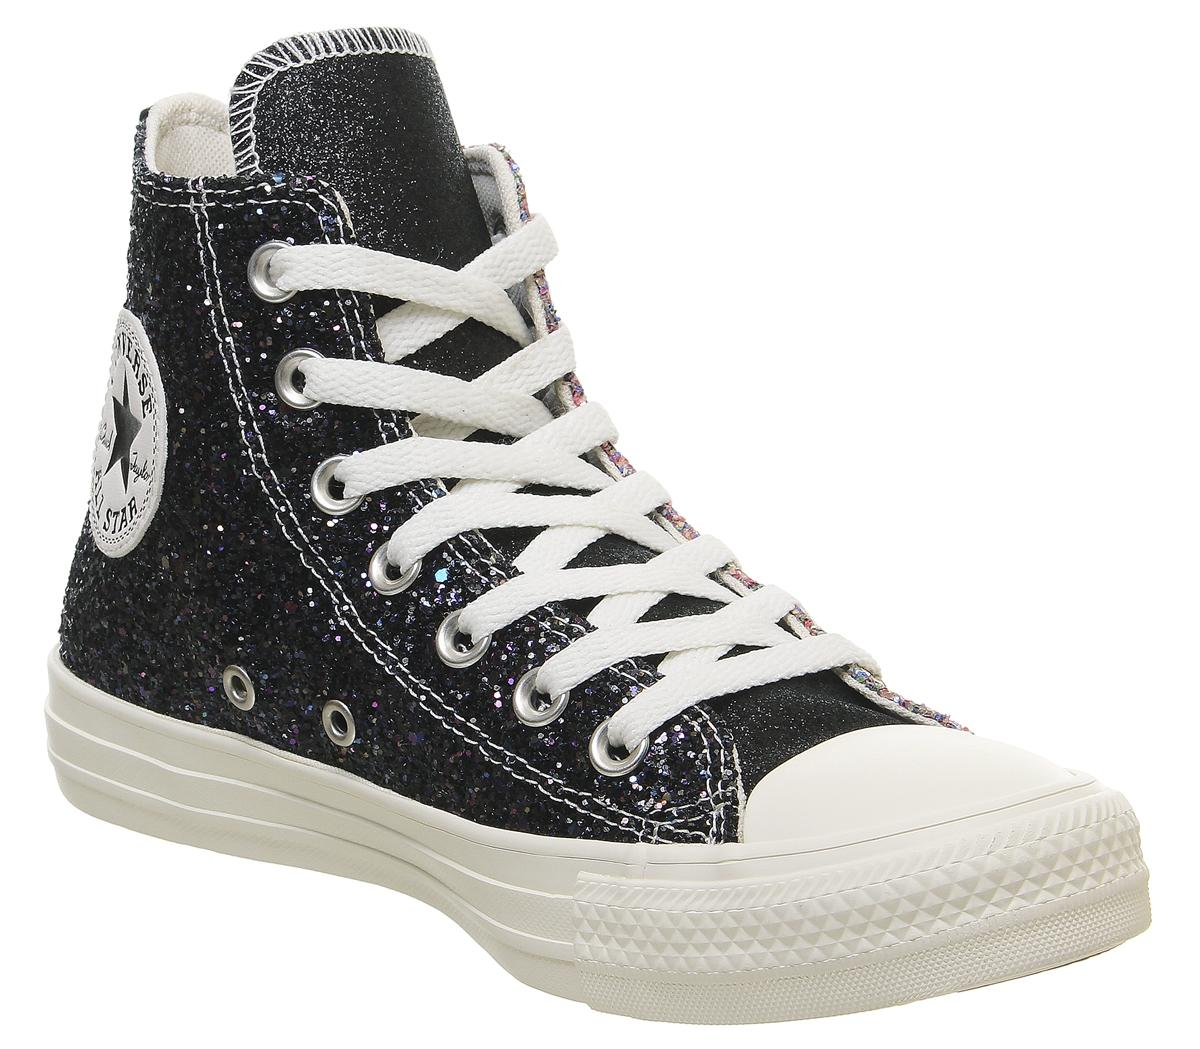 Converse All Star Hi Leather Trainers Black Pink Glitter